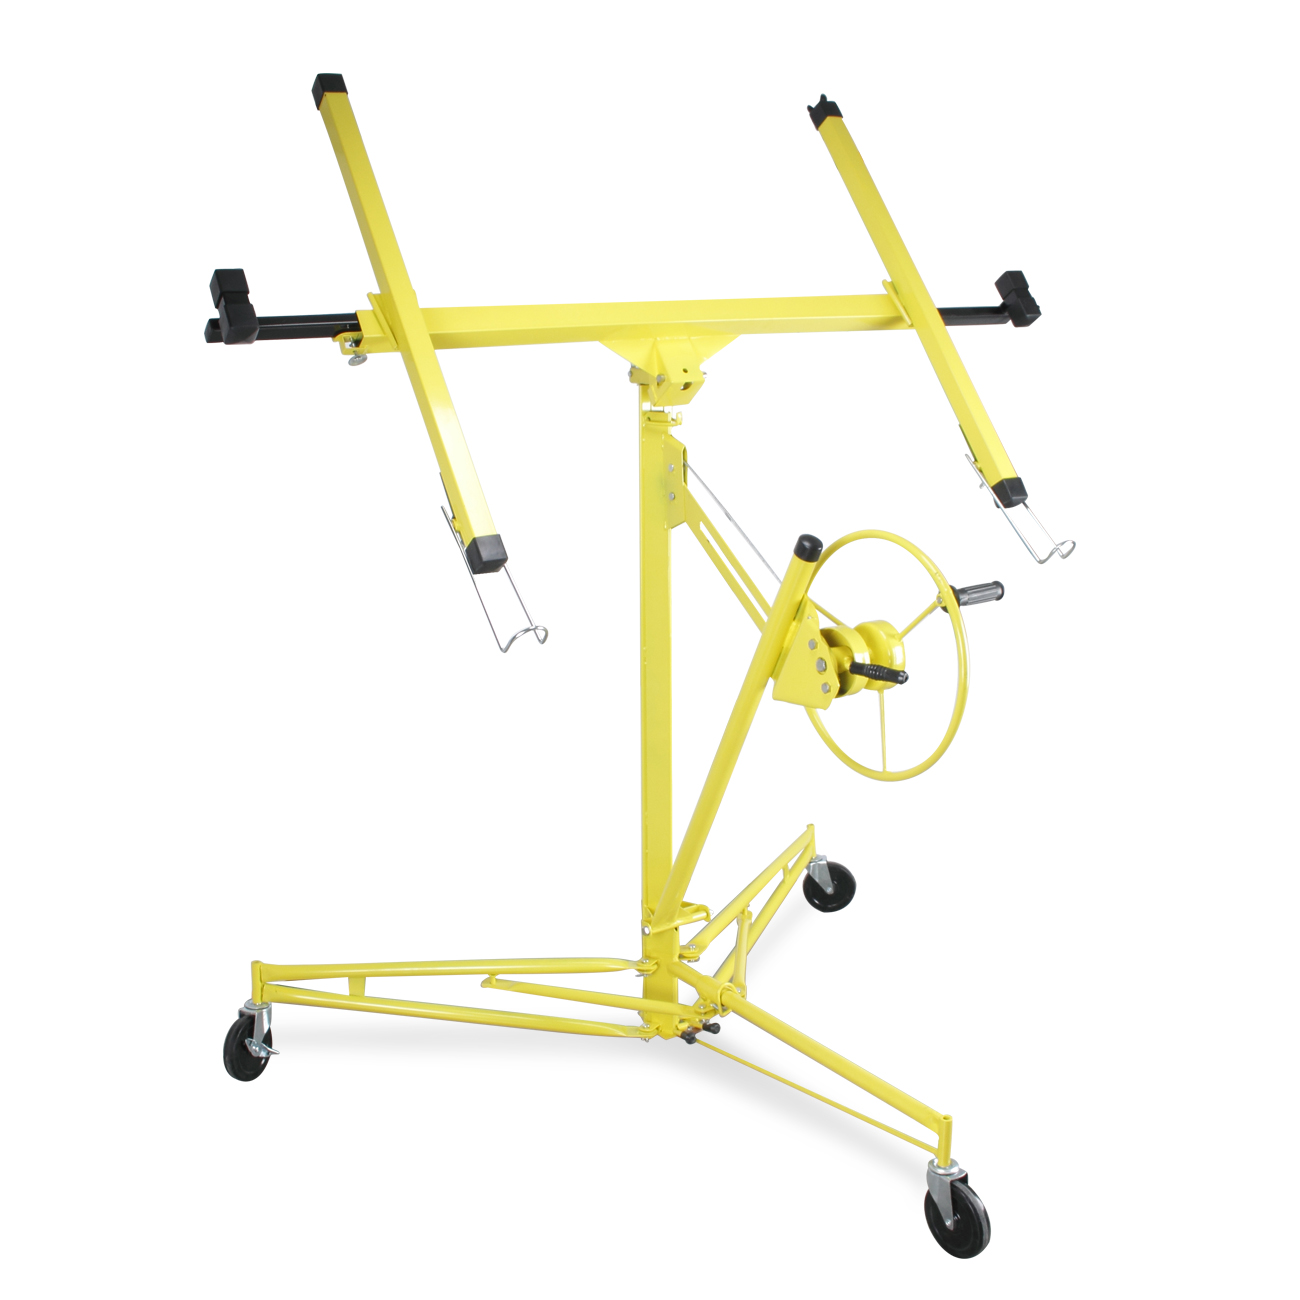 ARKSEN Adjustable Drywall Panel Lift Dry Wall Panel Hoist Lockable Lifter Ceiling Max 11ft, Yellow by ARKSEN